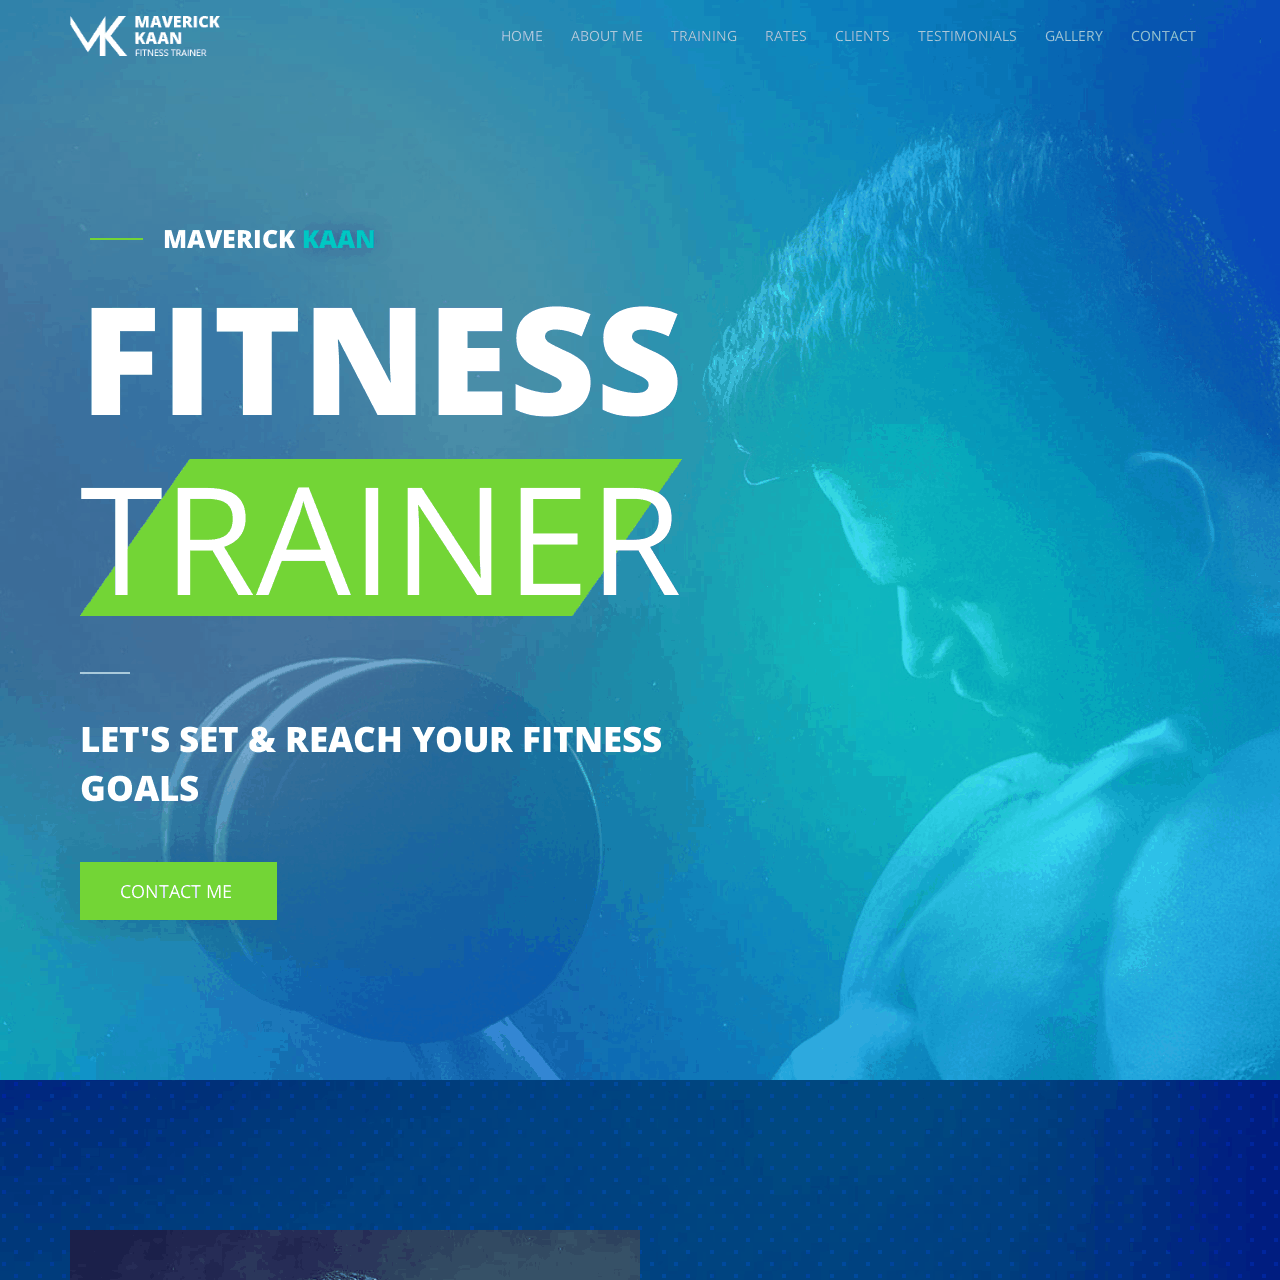 fitness-training-website-design